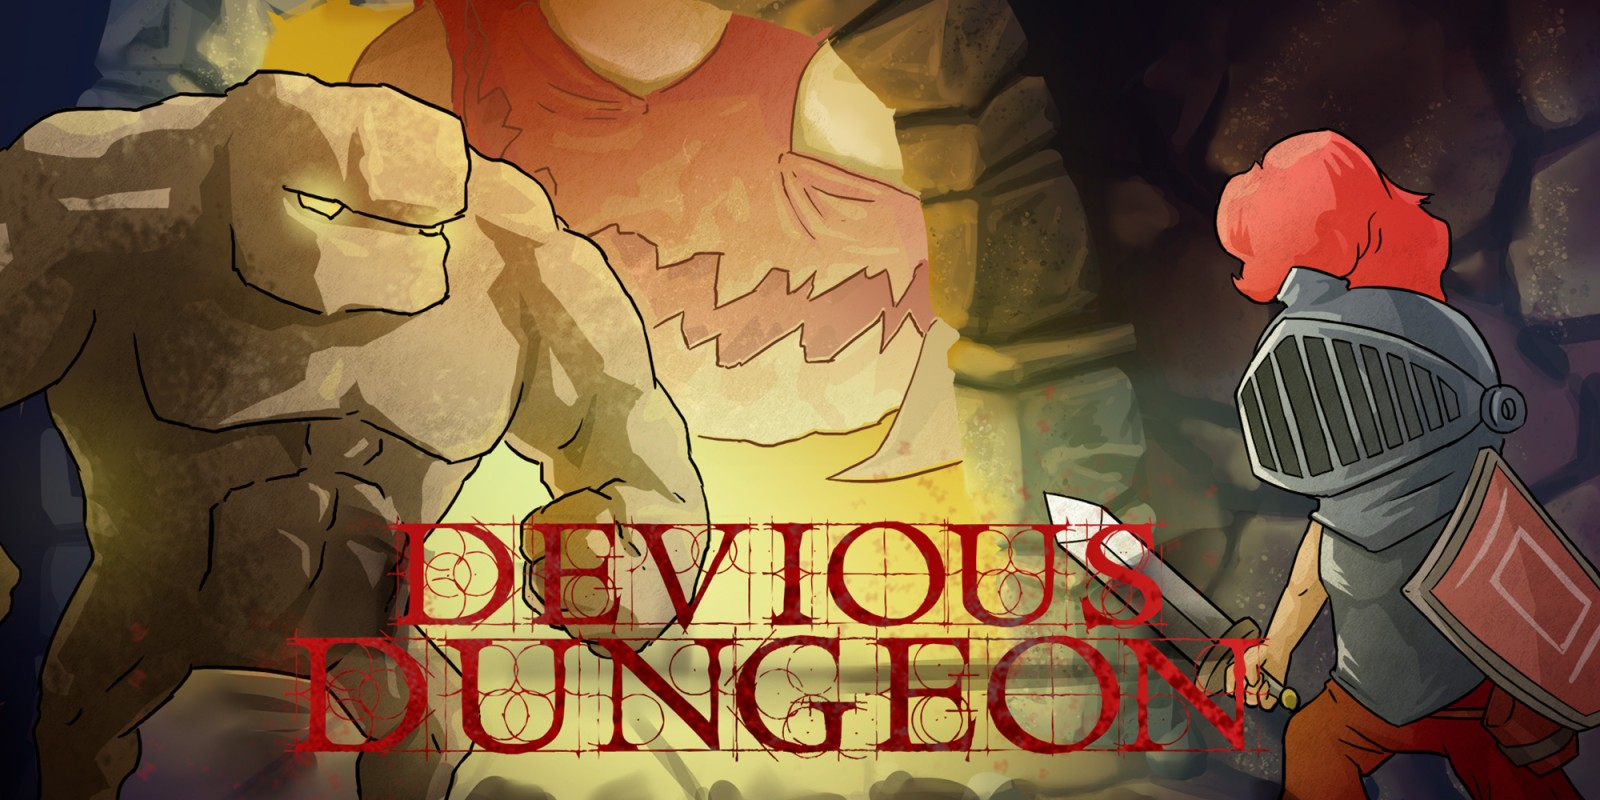 Devious Dungeon Masthead